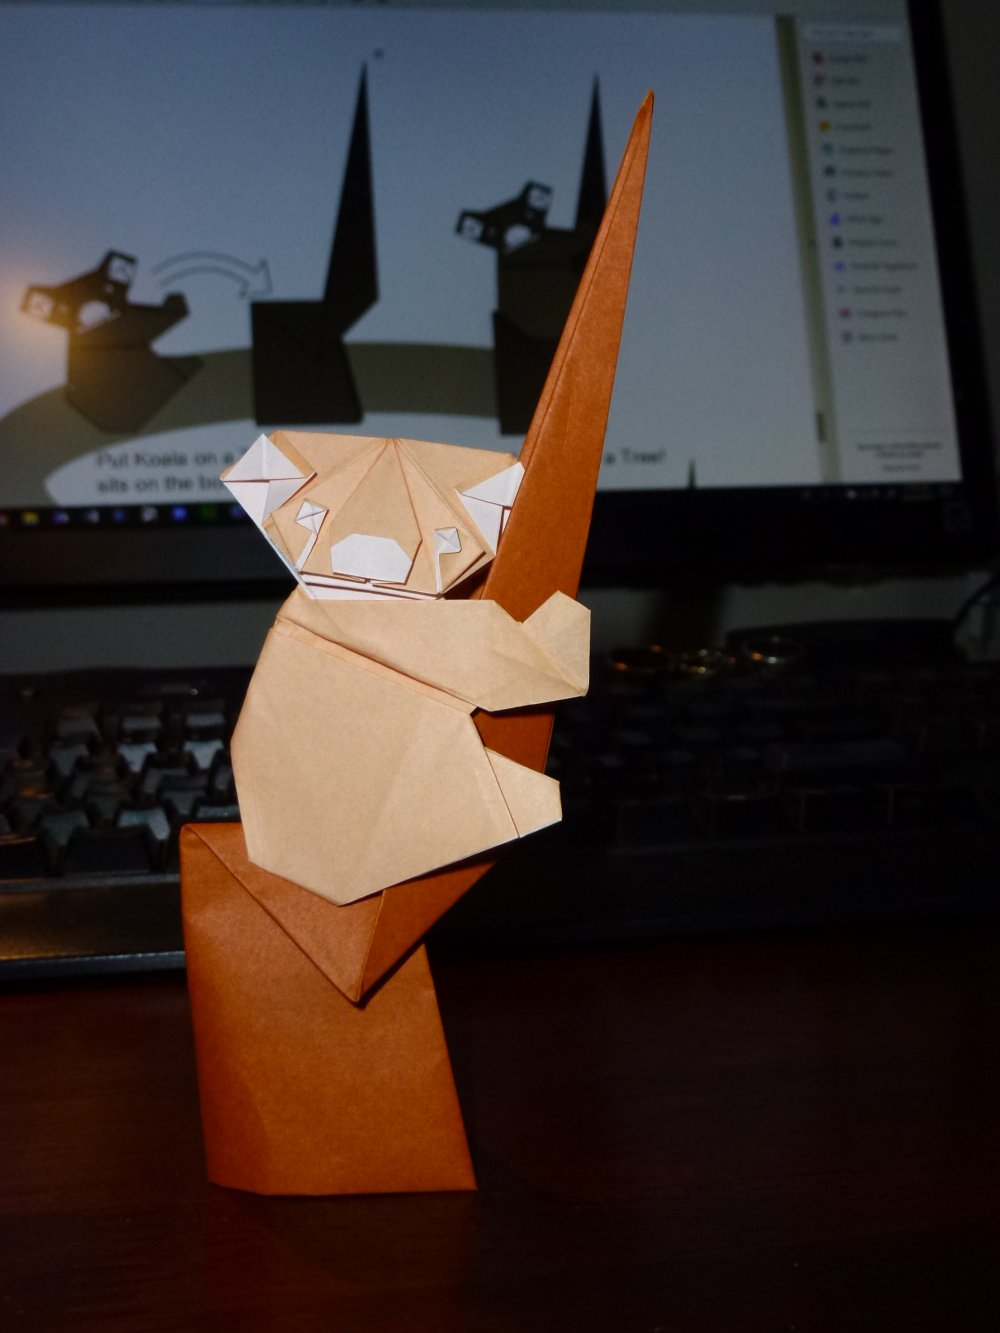 How to Make an Origami Koala Face Step by Step Instructions   Free ...   1333x1000